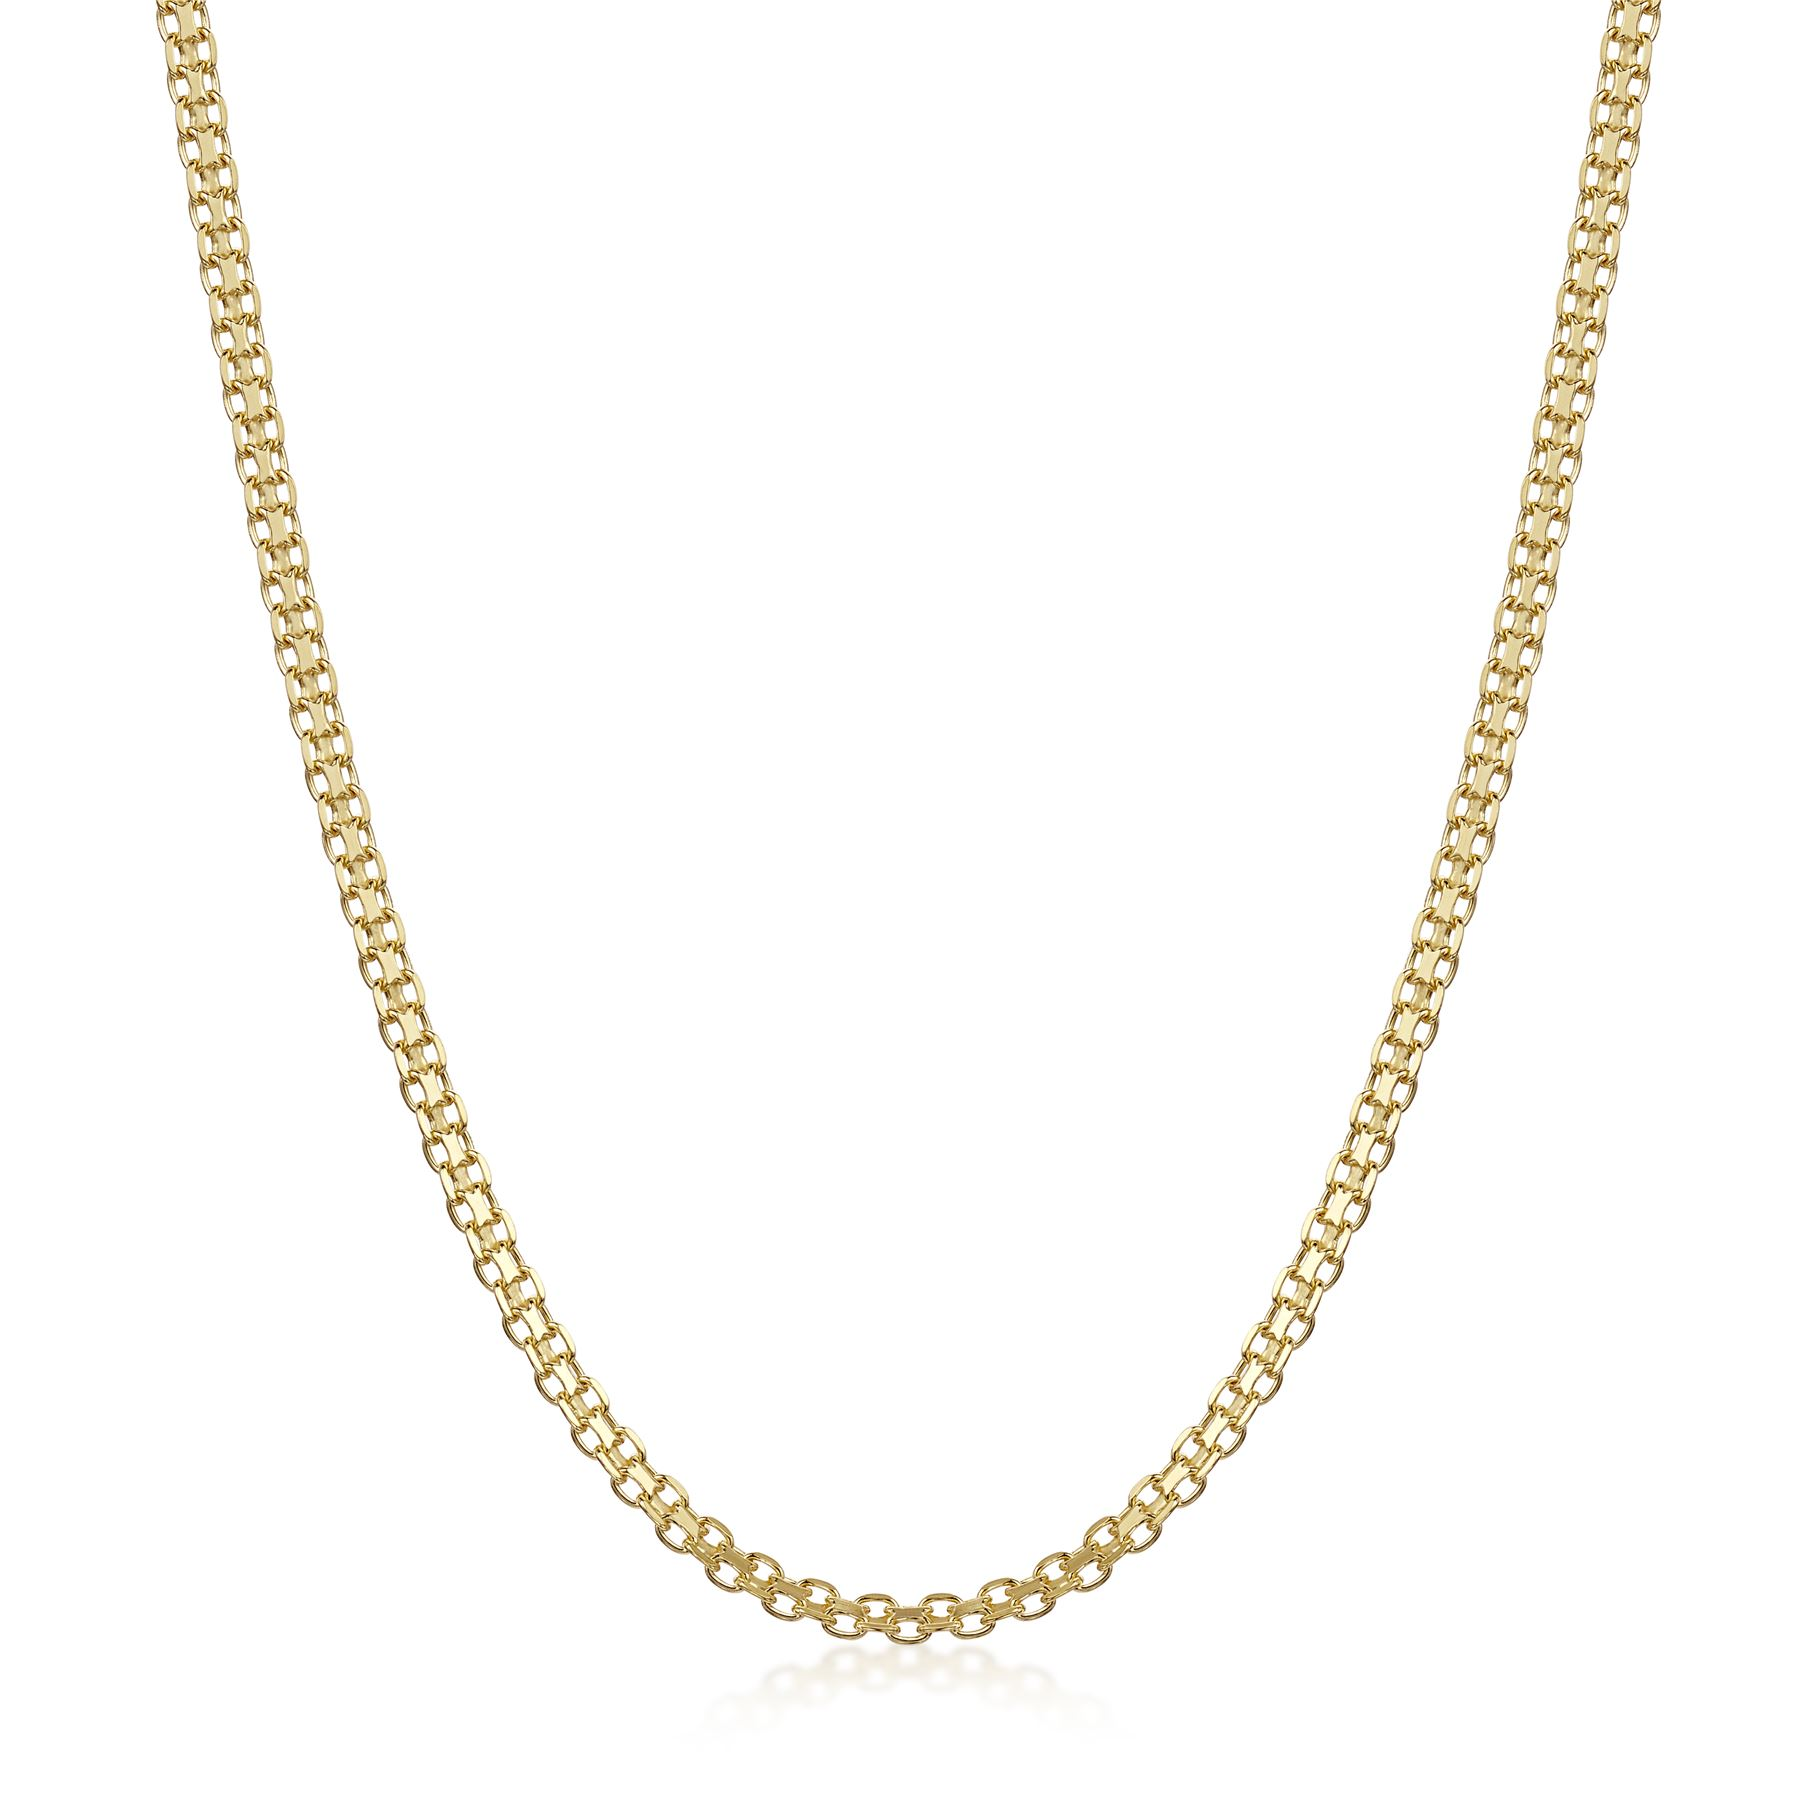 Amberta-Genuine-Gold-Plated-on-Real-925-Sterling-Silver-Necklace-Chain-Italy miniatura 40